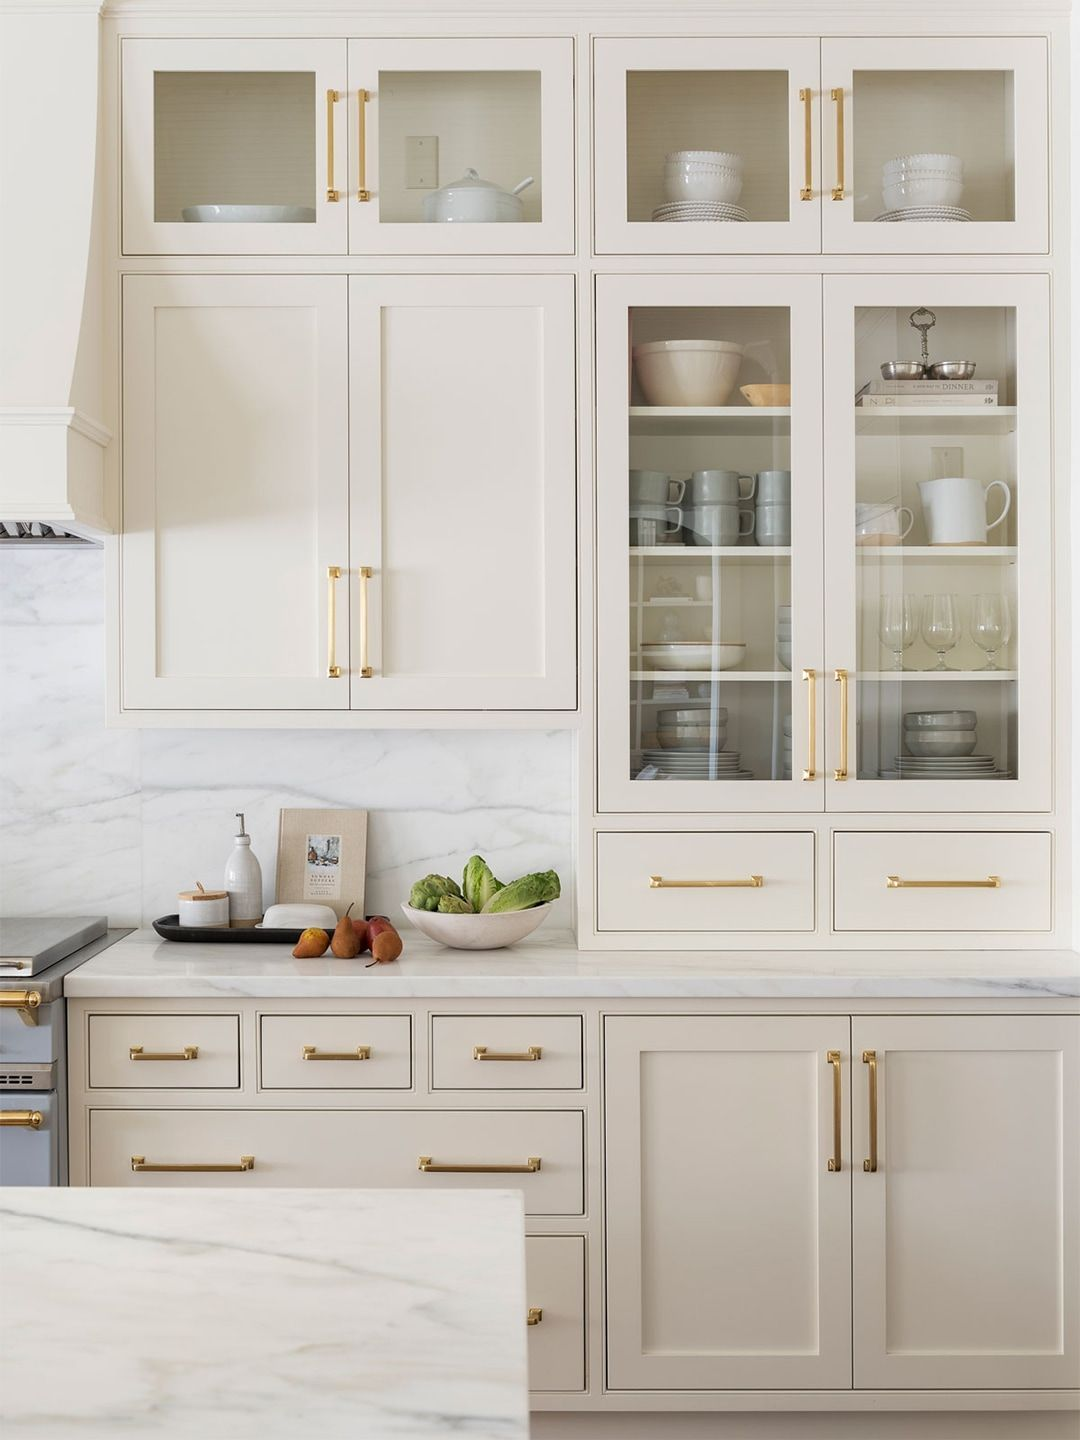 Cream Colored Cabinets Is The Dose Of Warmth Your Kitchen Needs In 2020 Kitchen Cabinet Design Beige Kitchen Beige Kitchen Cabinets